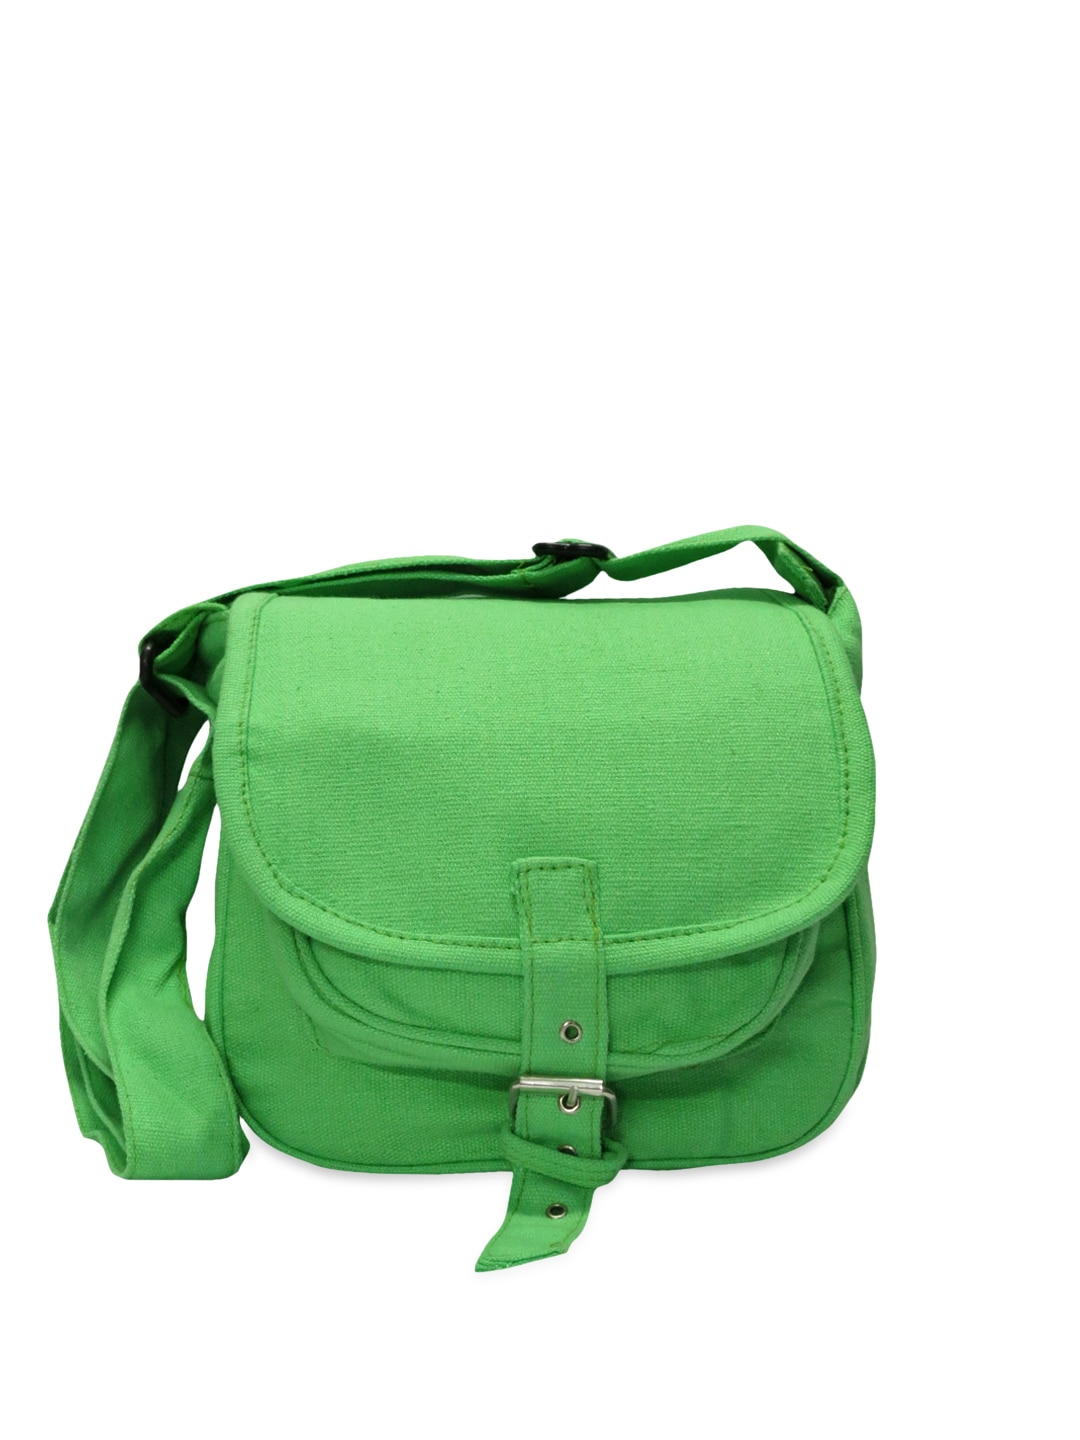 Buy Ame Green Sling Bag - 598 - Accessories for Women - 669853